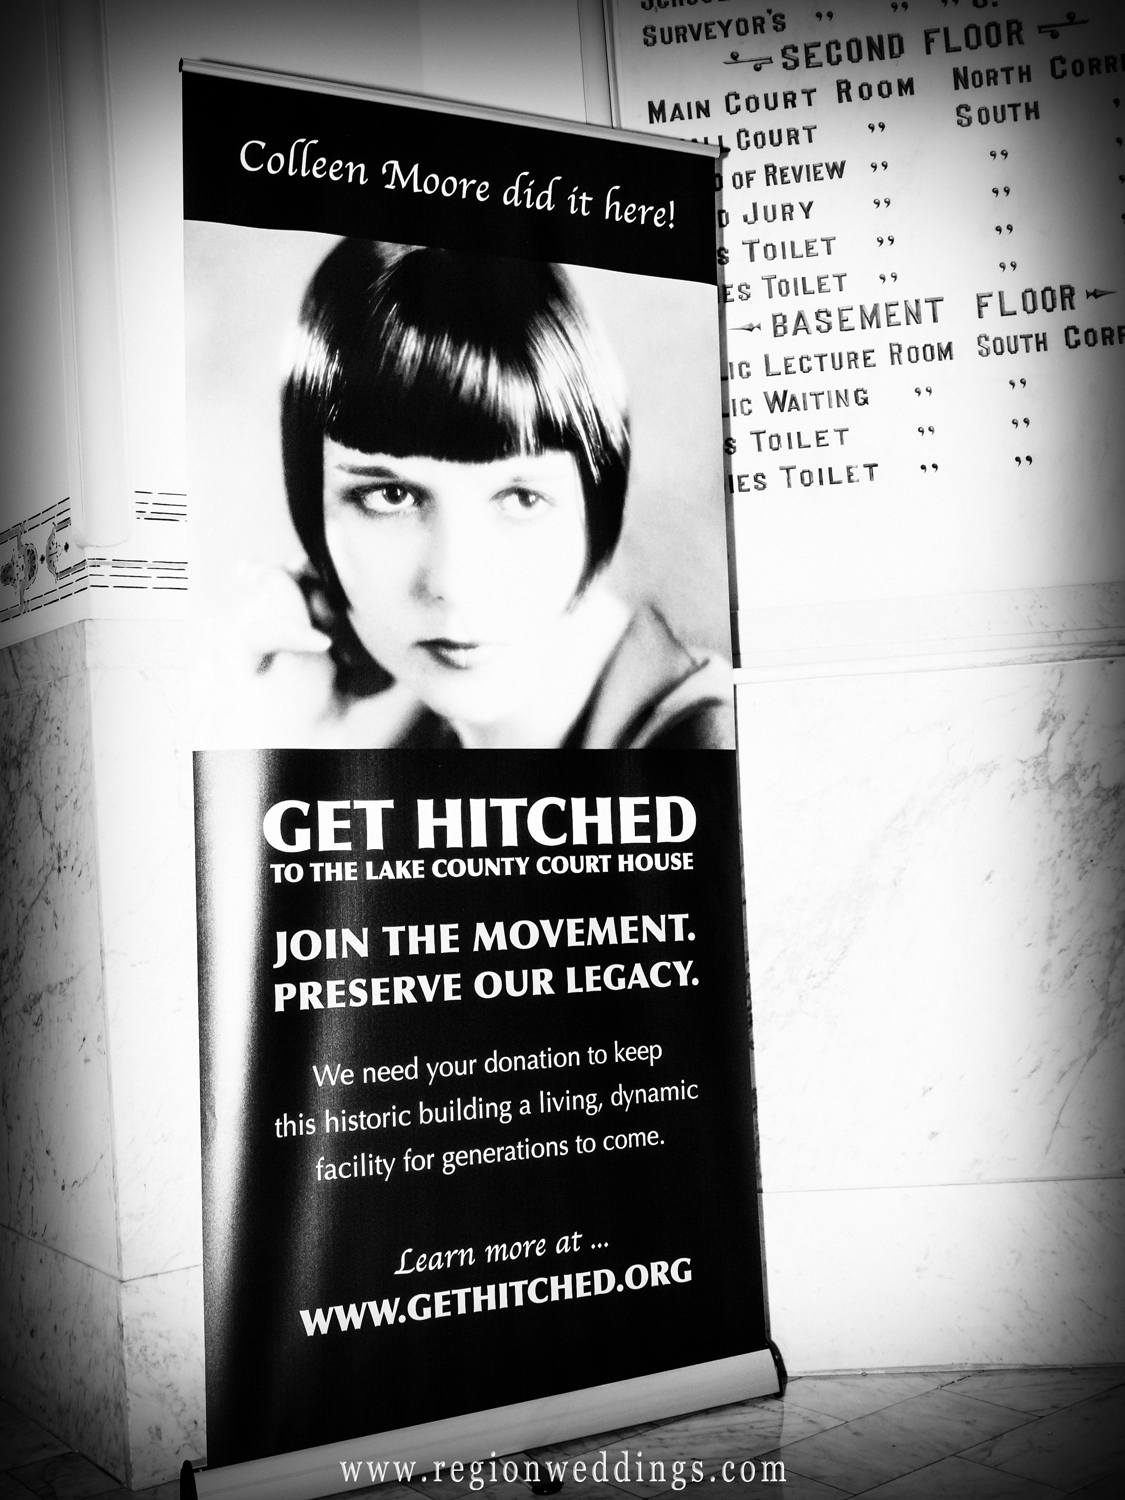 Get Hitched promotional poster for the Lake County Courthouse.